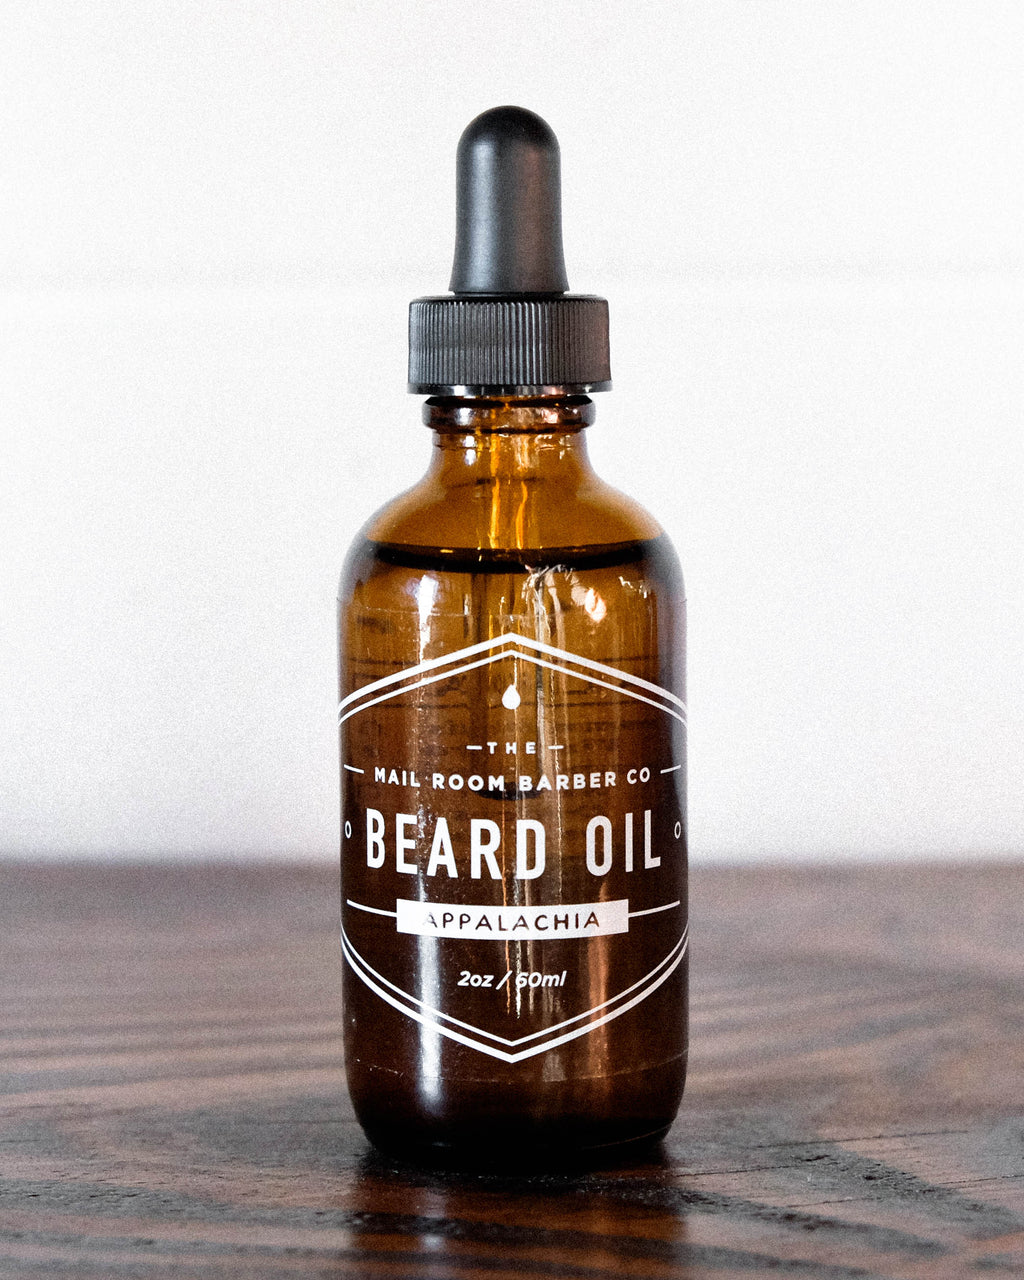 Beard oil designed to soften and nourish your beard made by Florence, SC sustainable brand and makers Mailroom Barber. Available in scents: Appalachia, Tea Tree, and Pipe Tobacco. Grooming products that are made using 100% ethically sourced ingredients and packaging.